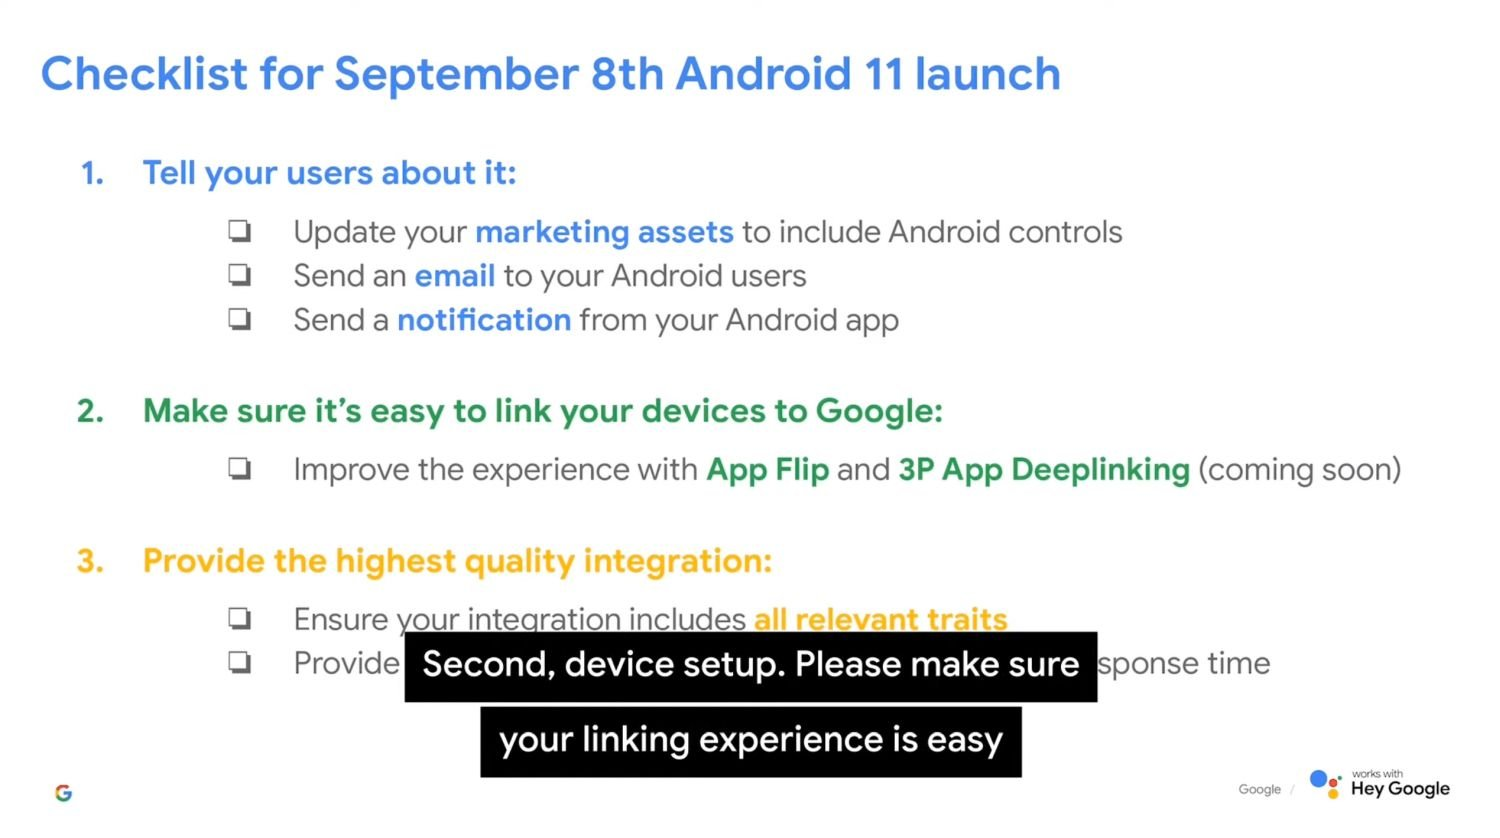 android 11 september launch